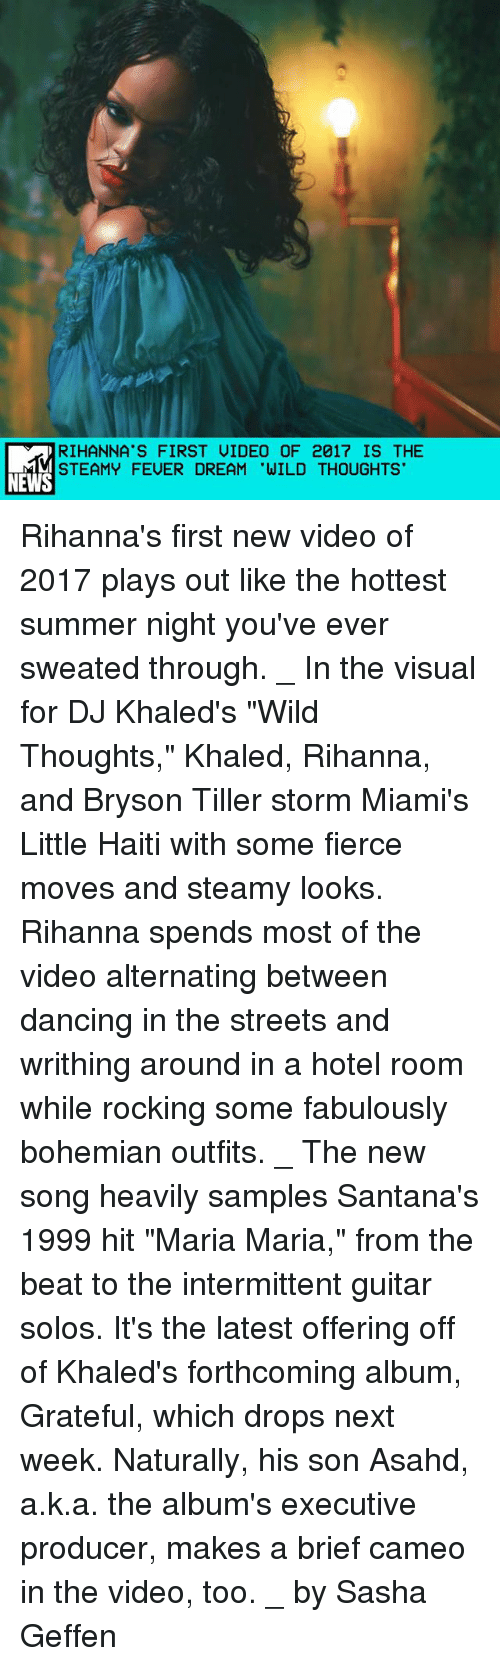 "Bryson Tiller, Dancing, and Memes: RIHANNA'S FIRST UIDEO OF 2017 IS THE  STEAMY FEUER DREAM 'WILD THOUGHTS  NEWS Rihanna's first new video of 2017 plays out like the hottest summer night you've ever sweated through. _ In the visual for DJ Khaled's ""Wild Thoughts,"" Khaled, Rihanna, and Bryson Tiller storm Miami's Little Haiti with some fierce moves and steamy looks. Rihanna spends most of the video alternating between dancing in the streets and writhing around in a hotel room while rocking some fabulously bohemian outfits. _ The new song heavily samples Santana's 1999 hit ""Maria Maria,"" from the beat to the intermittent guitar solos. It's the latest offering off of Khaled's forthcoming album, Grateful, which drops next week. Naturally, his son Asahd, a.k.a. the album's executive producer, makes a brief cameo in the video, too. _ by Sasha Geffen"